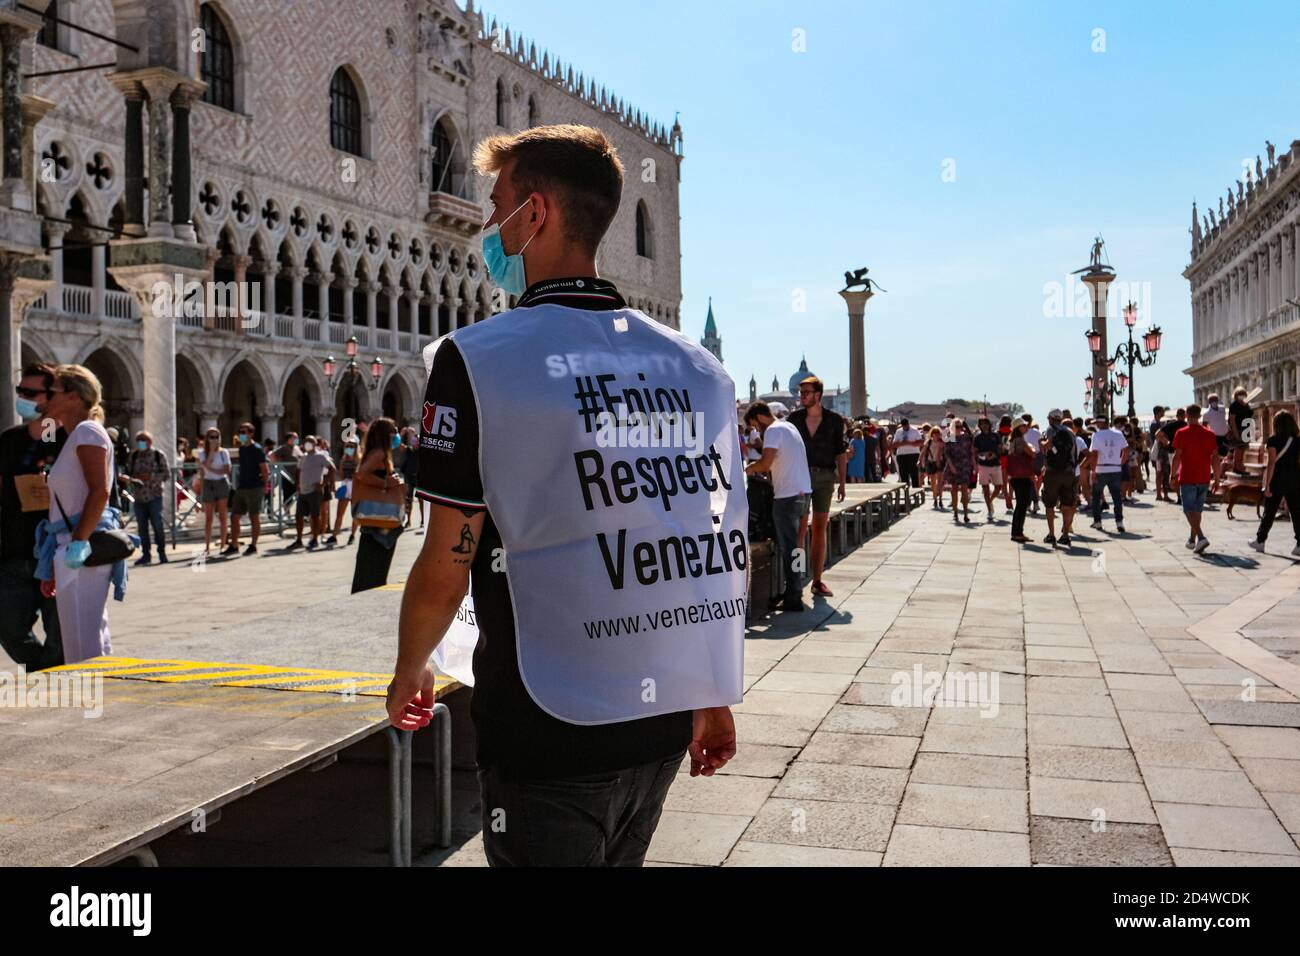 """""""#Enjoy Respect Venezia"""" guard in surgical face mask represents responsible tourism at St Mark's Square during the coronavirus crisis. Stock Photo"""